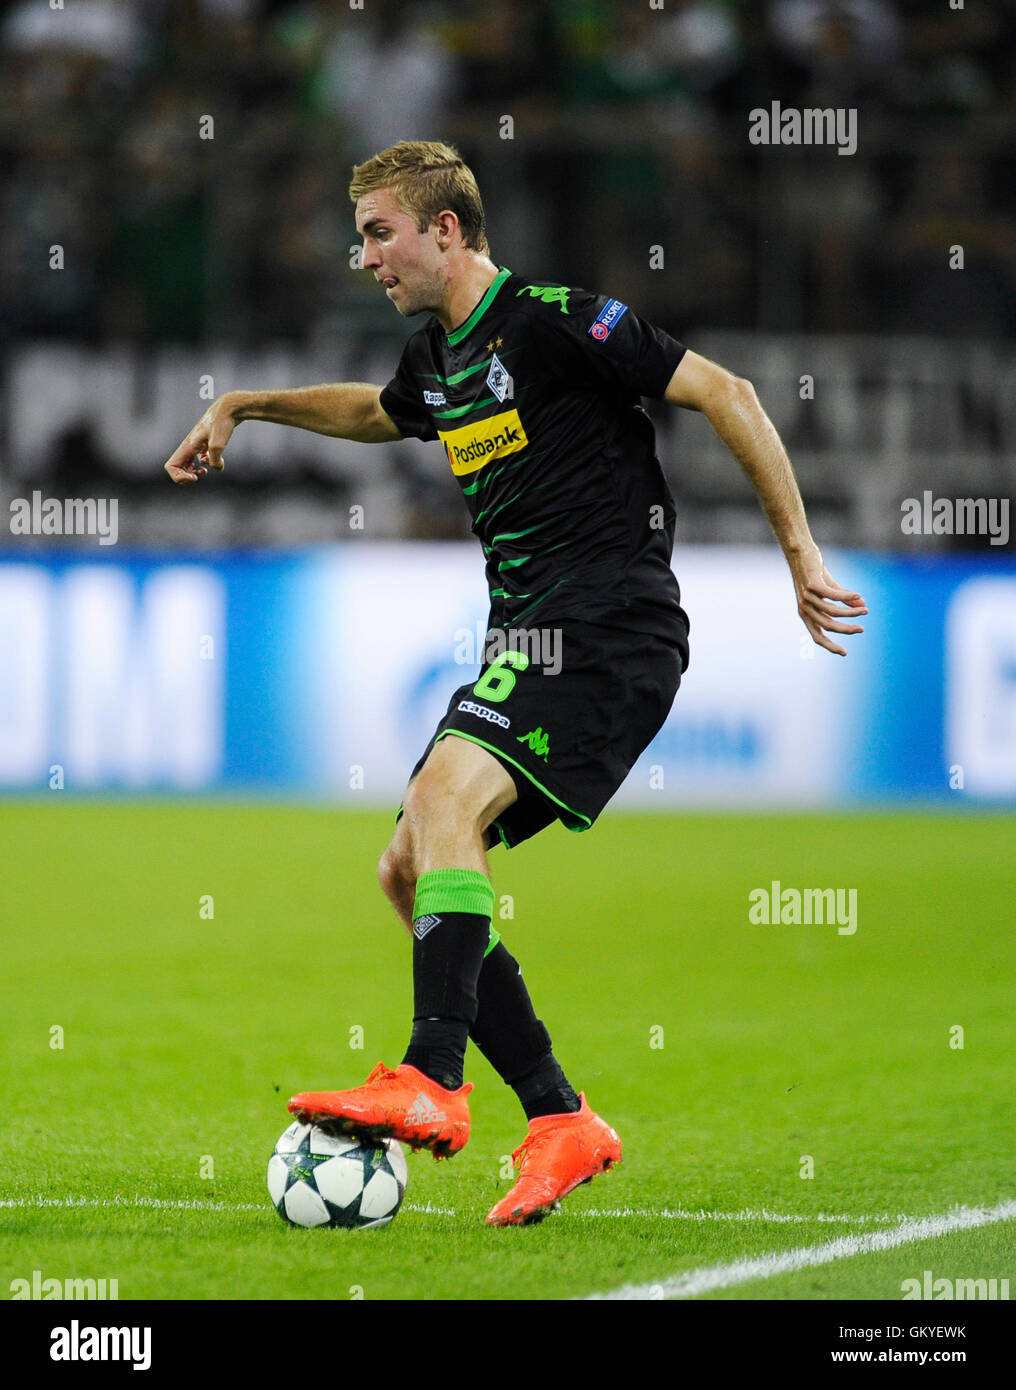 Borussia Park ,Moenchengladbach, NRW, Germany 24.8.2016, UEFA Champions League Qualification, 2016/17, Play-off, - Stock Image